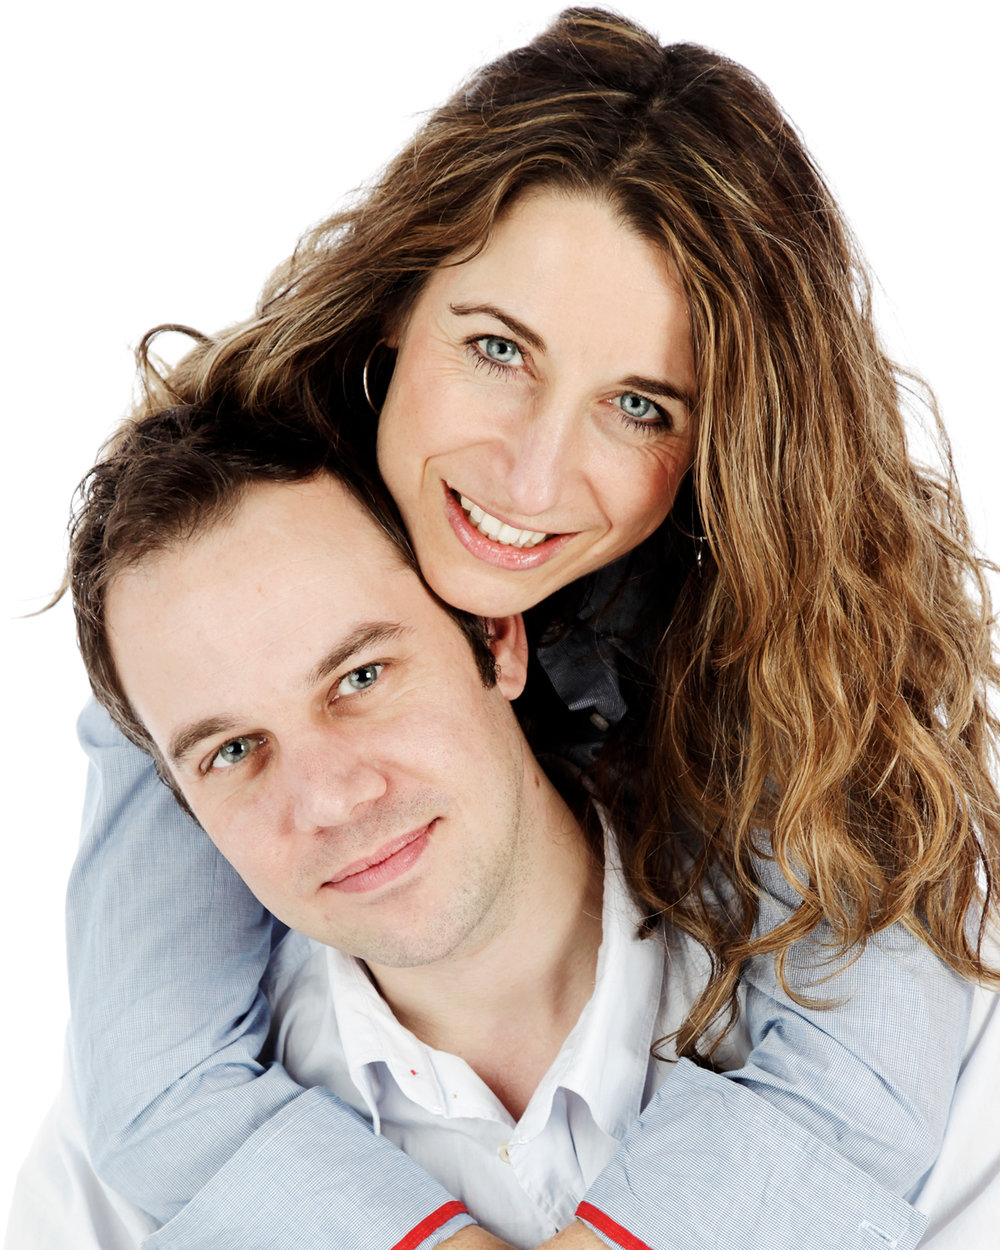 Couple_Adult_Portrait_Photographer_Newbury_Berkshire_004.jpg